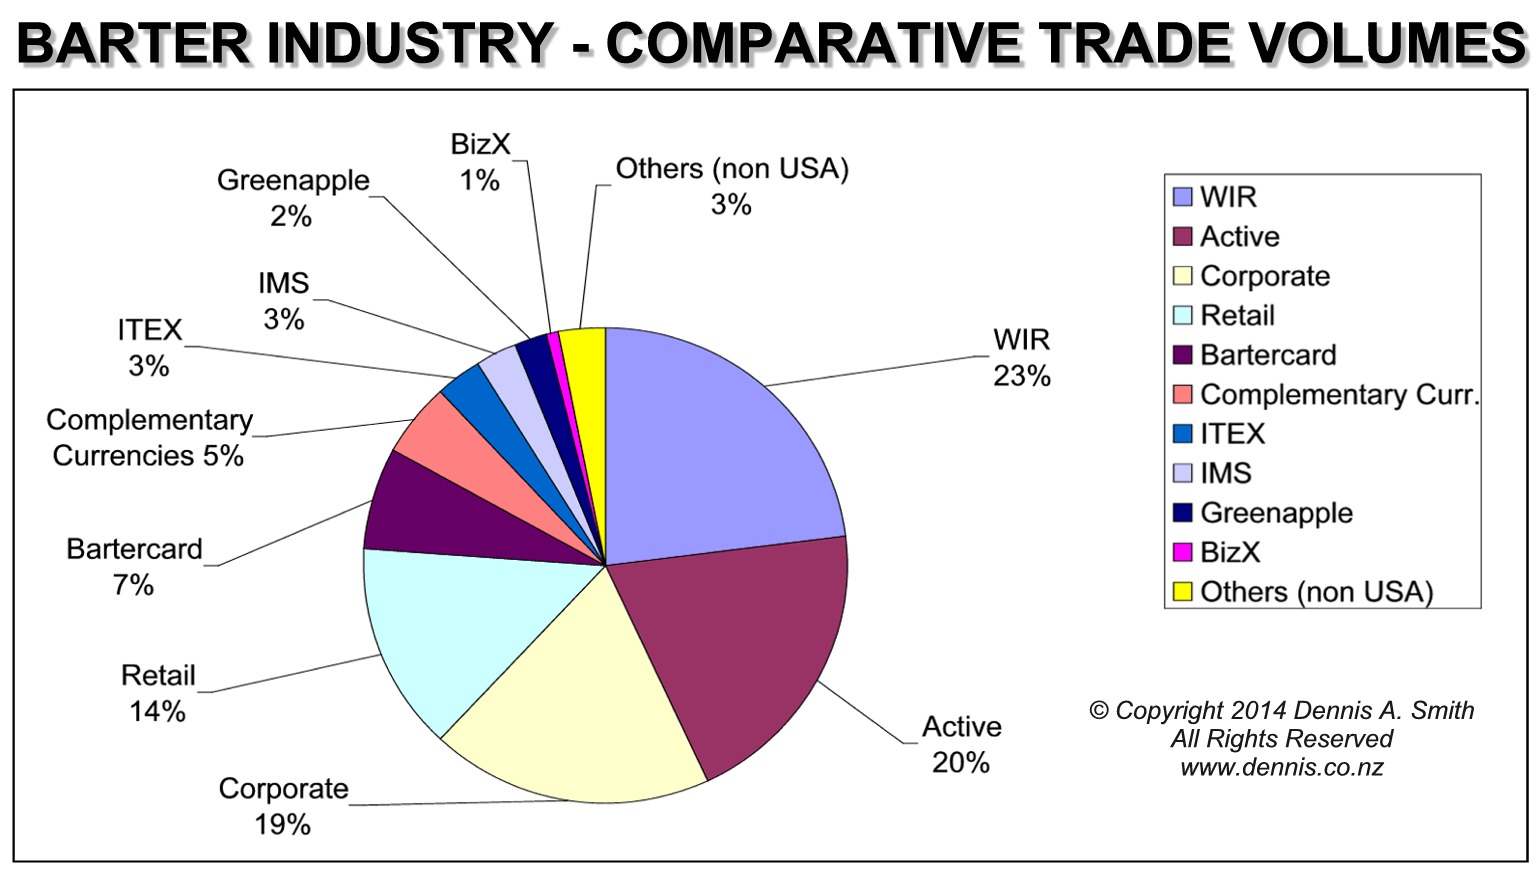 Comparative Trade Volumes – Barter Industry